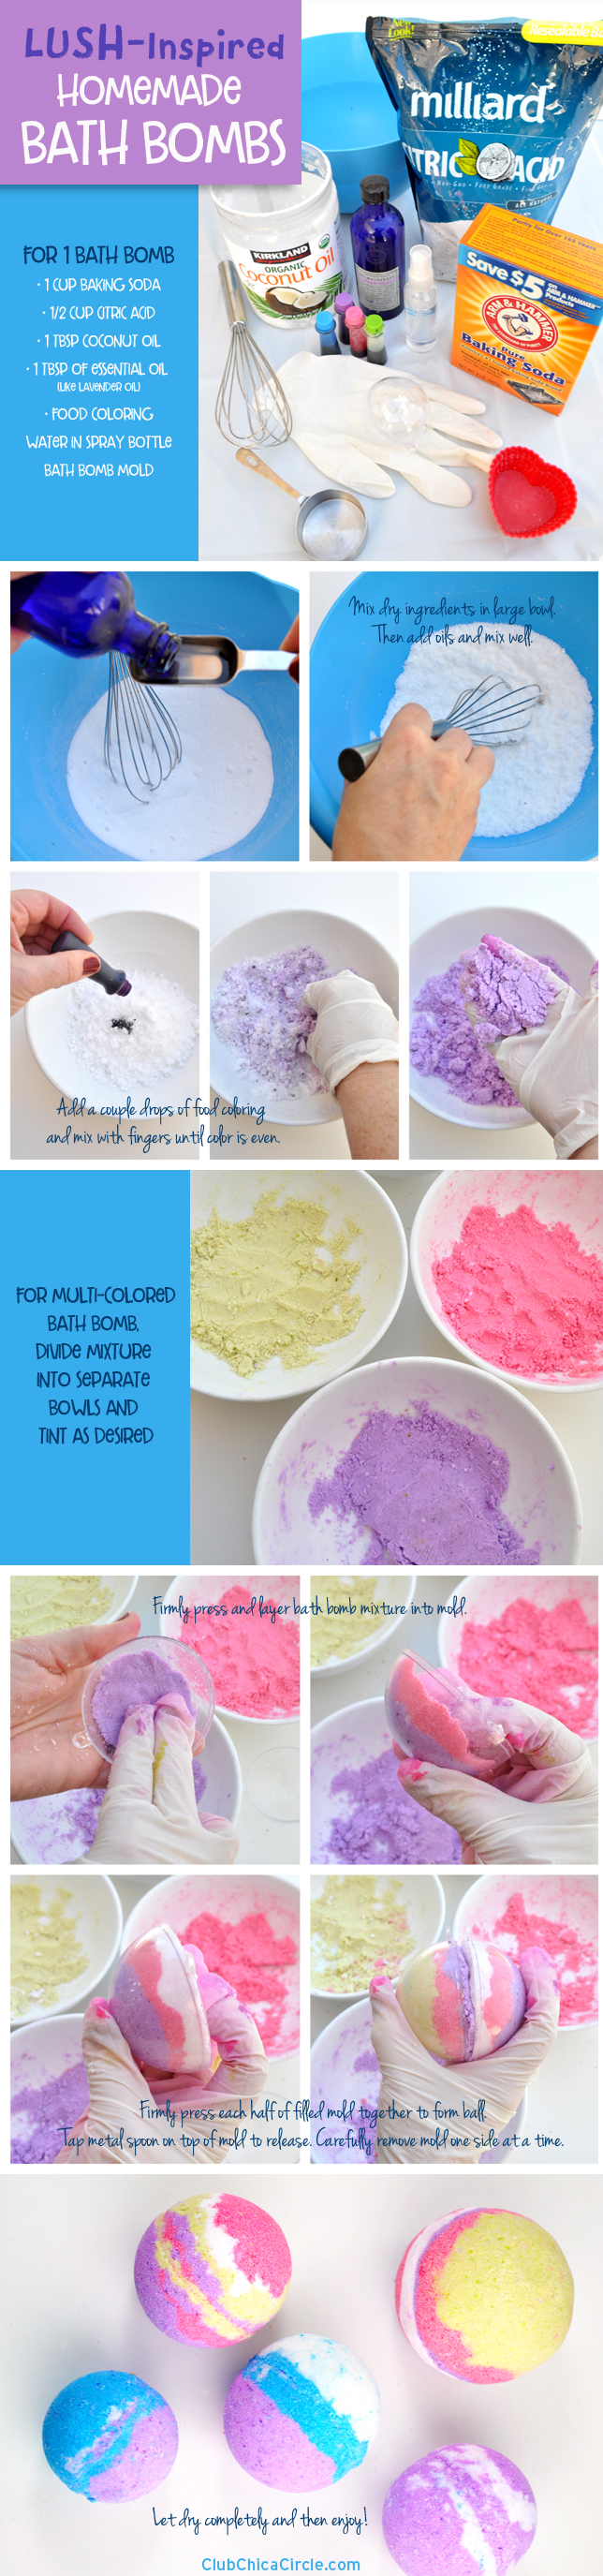 How to make homemade LUSH bath bombs